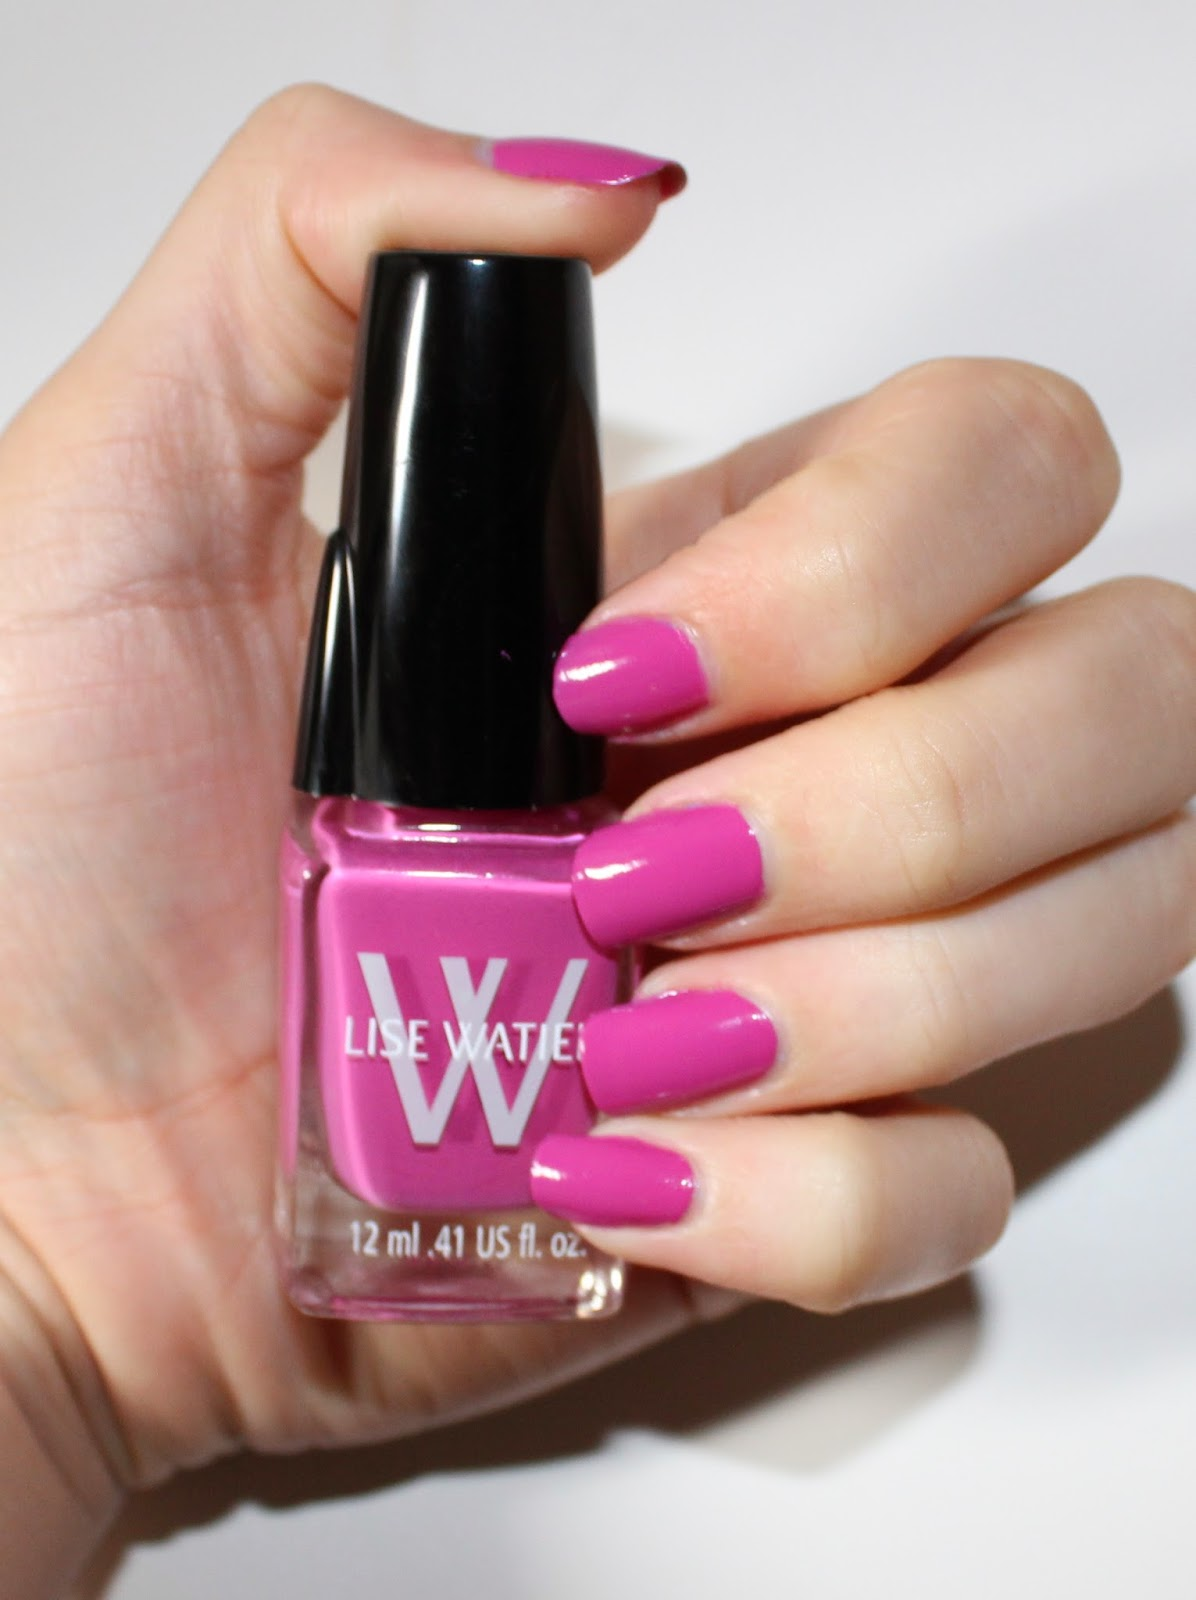 Lise Watier Light Cap Nail Lacquer in Rose Eden Swatch